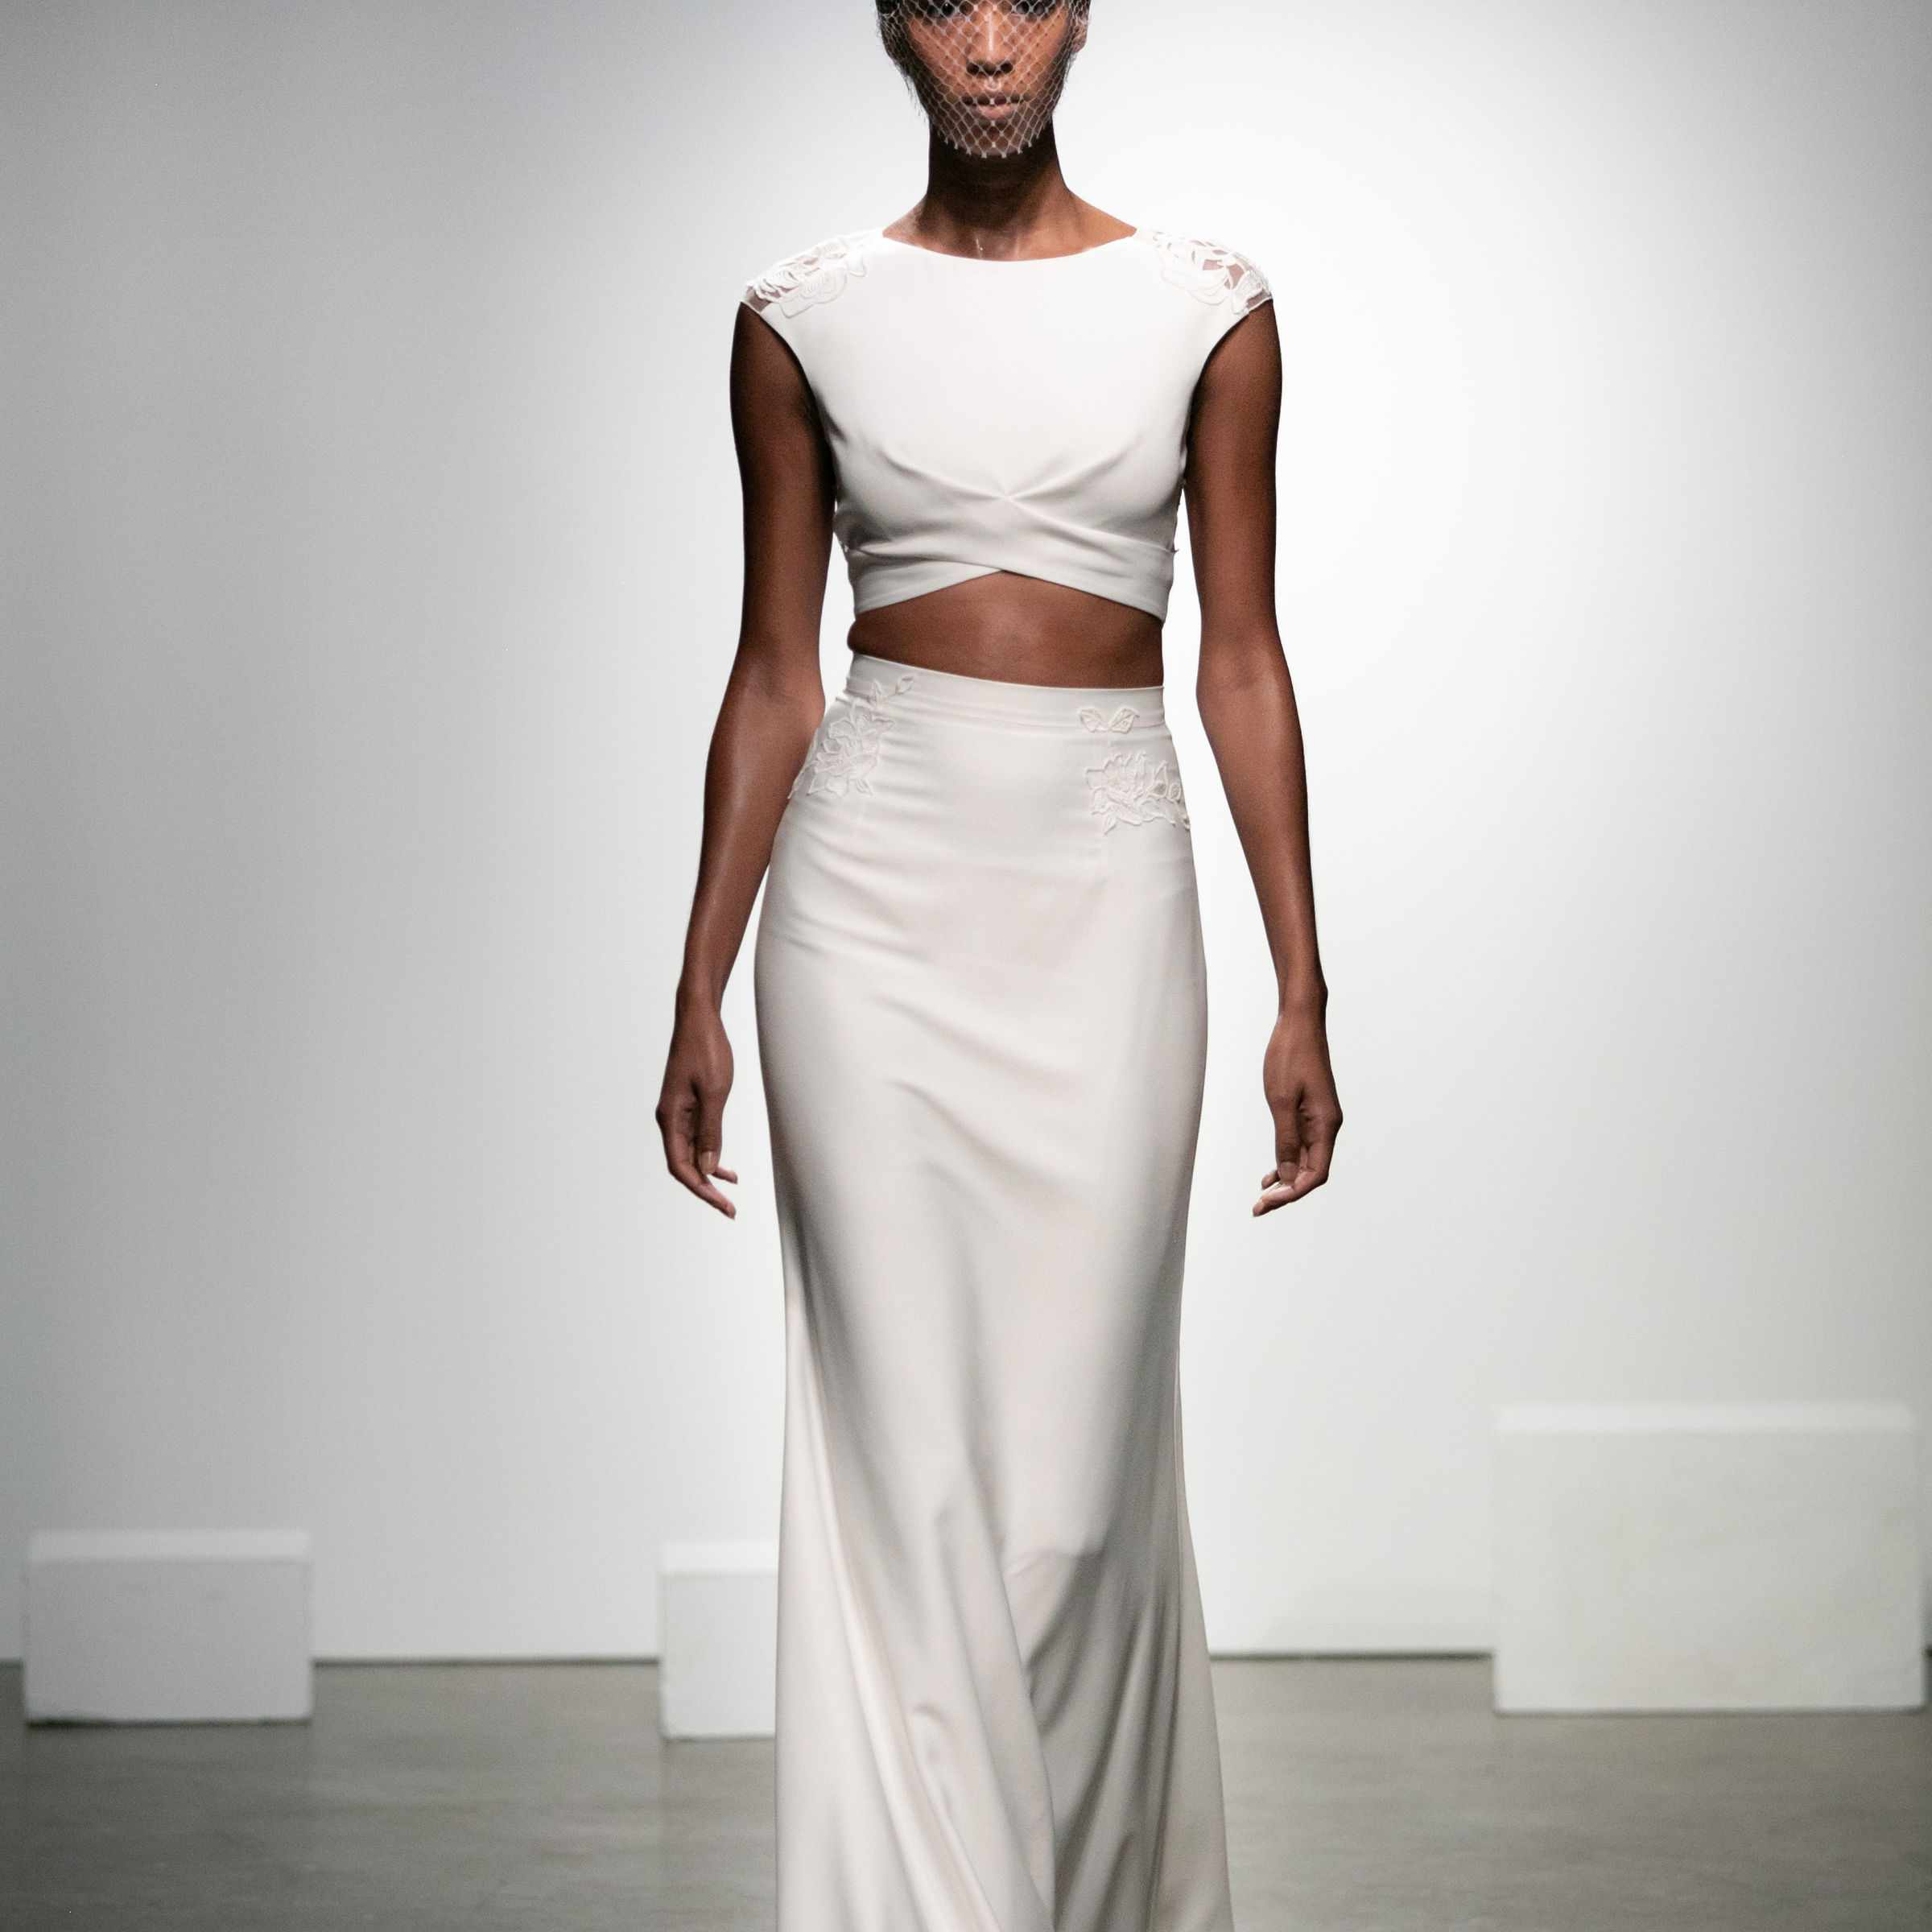 Model in crop top and skirt ensemble in crepe with appliquéd graphic rose patterned lace